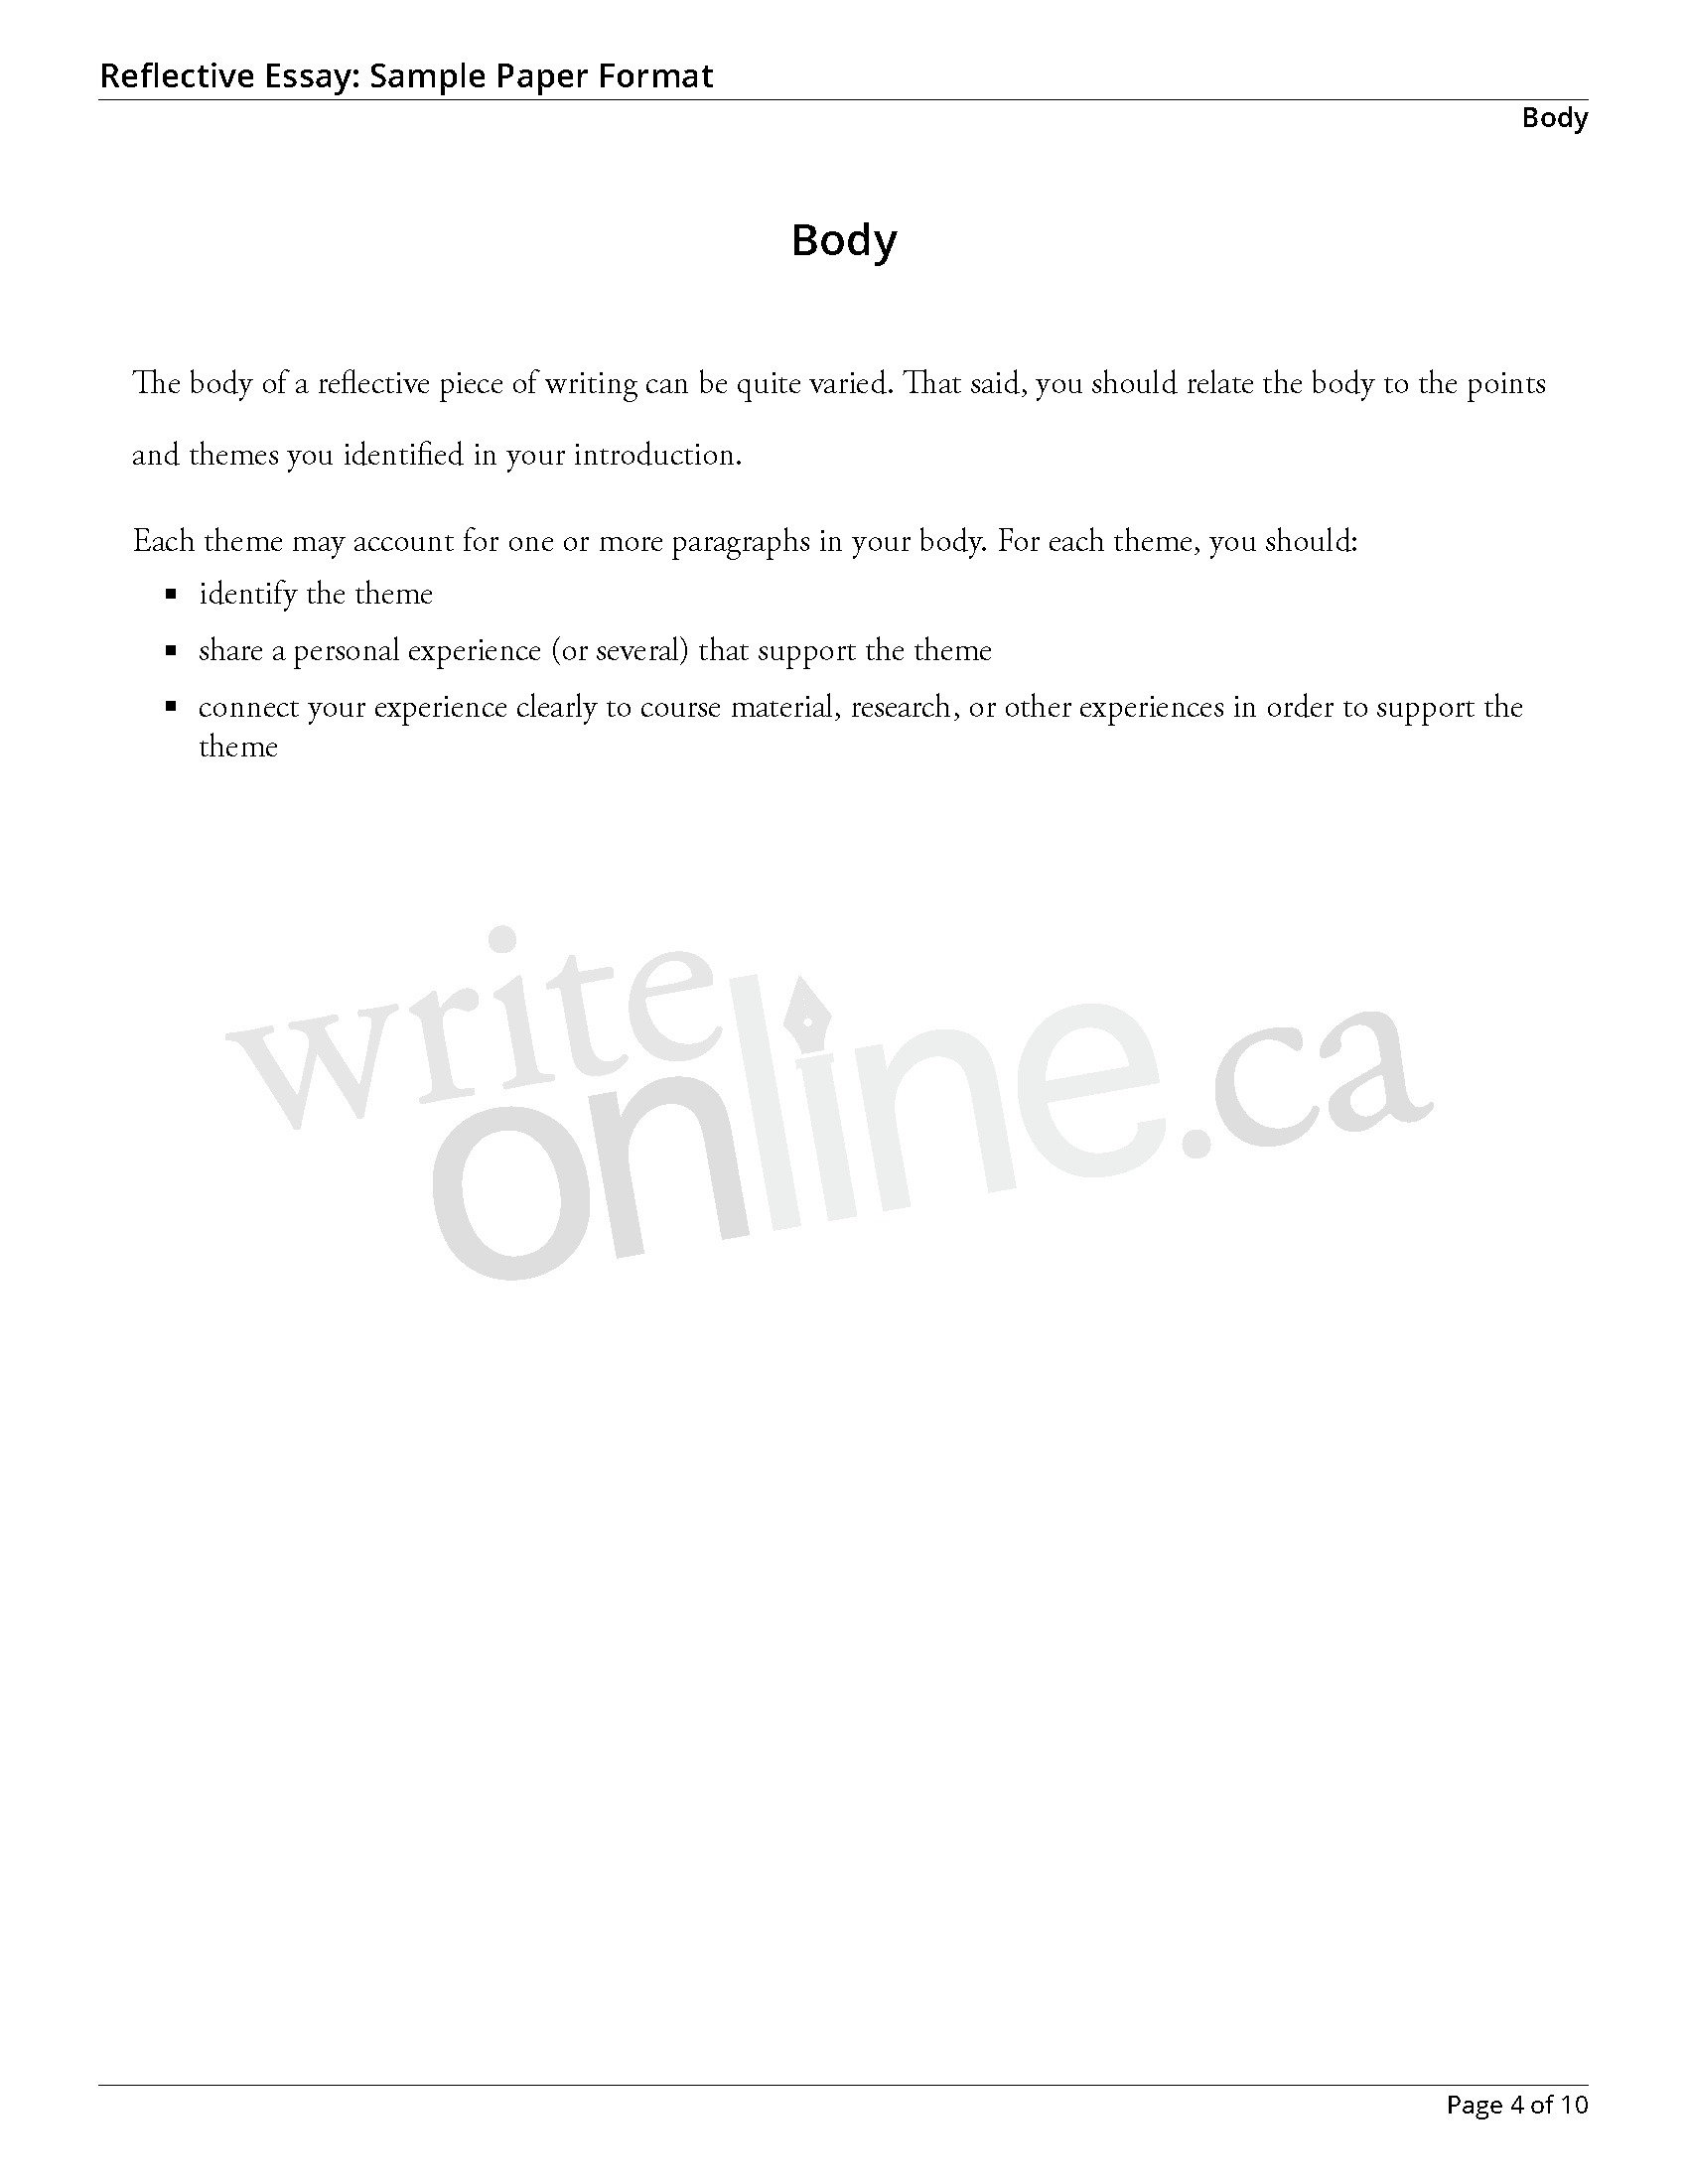 027 Sample Of Reflective Essay In Nursing Personal Admissions Reflectiveessay P Mentorship Australia For Scholarship Career Ethics Narrative School Uk Dreaded Spm 2011 About Love Interesting Samples Full